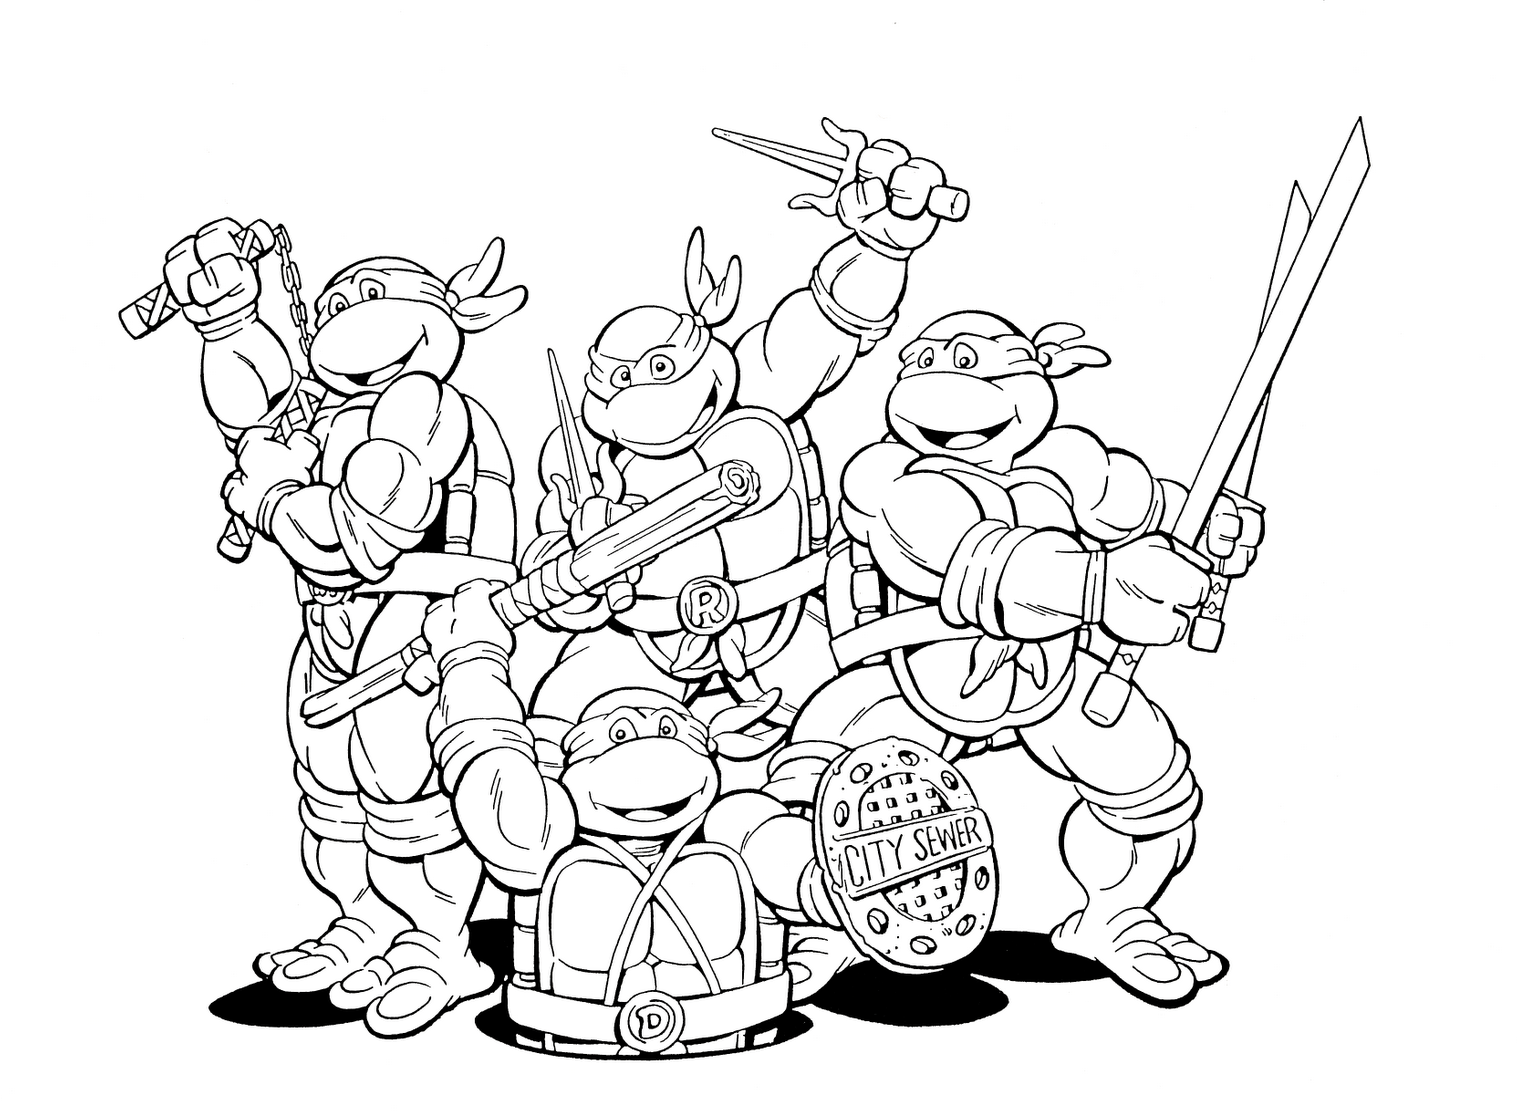 Ninja Turtles Funny Coloring Pages | Love it Crafts | Pinterest